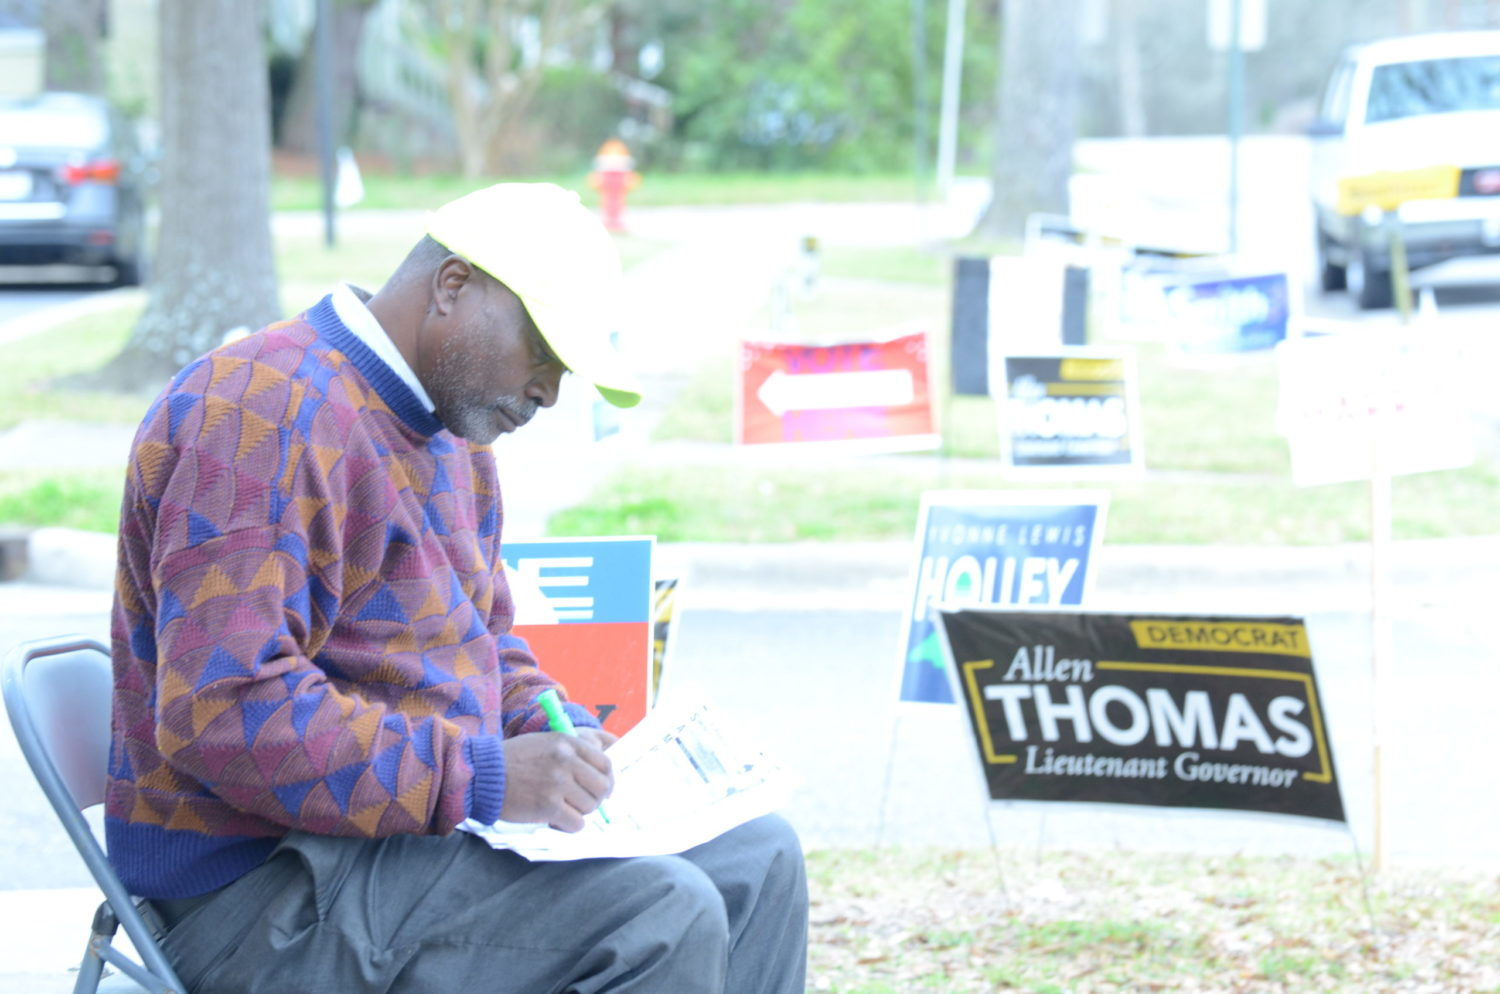 Edgecombe County Commissioner candidate Calvin Sherrod prepares sample primary election ballots for potential voters outside the Edgecombe County Administration Building in Tarboro on March 3, 2020. Calvin Adkins / Carolina Public Press